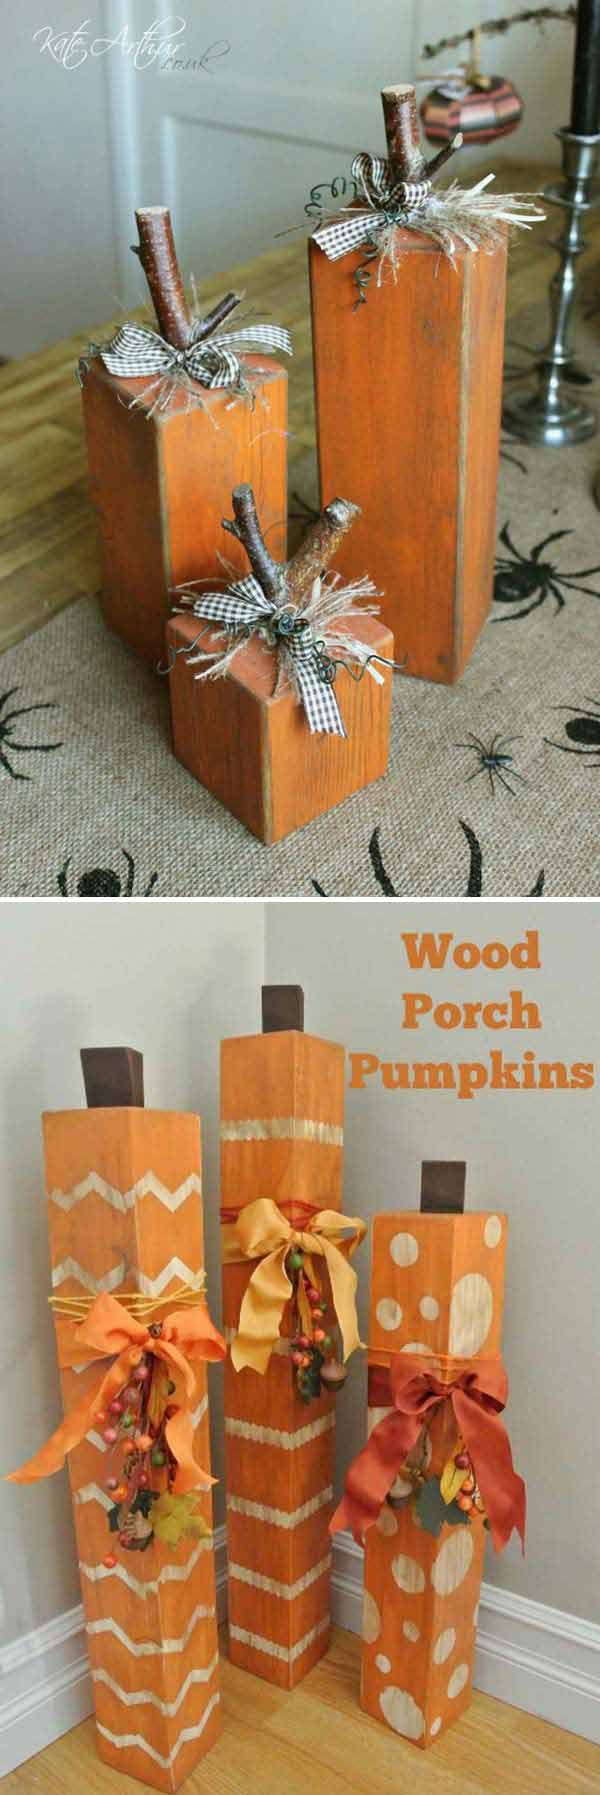 20 halloween decorations crafted from reclaimed wood - Homemade Halloween Centerpieces